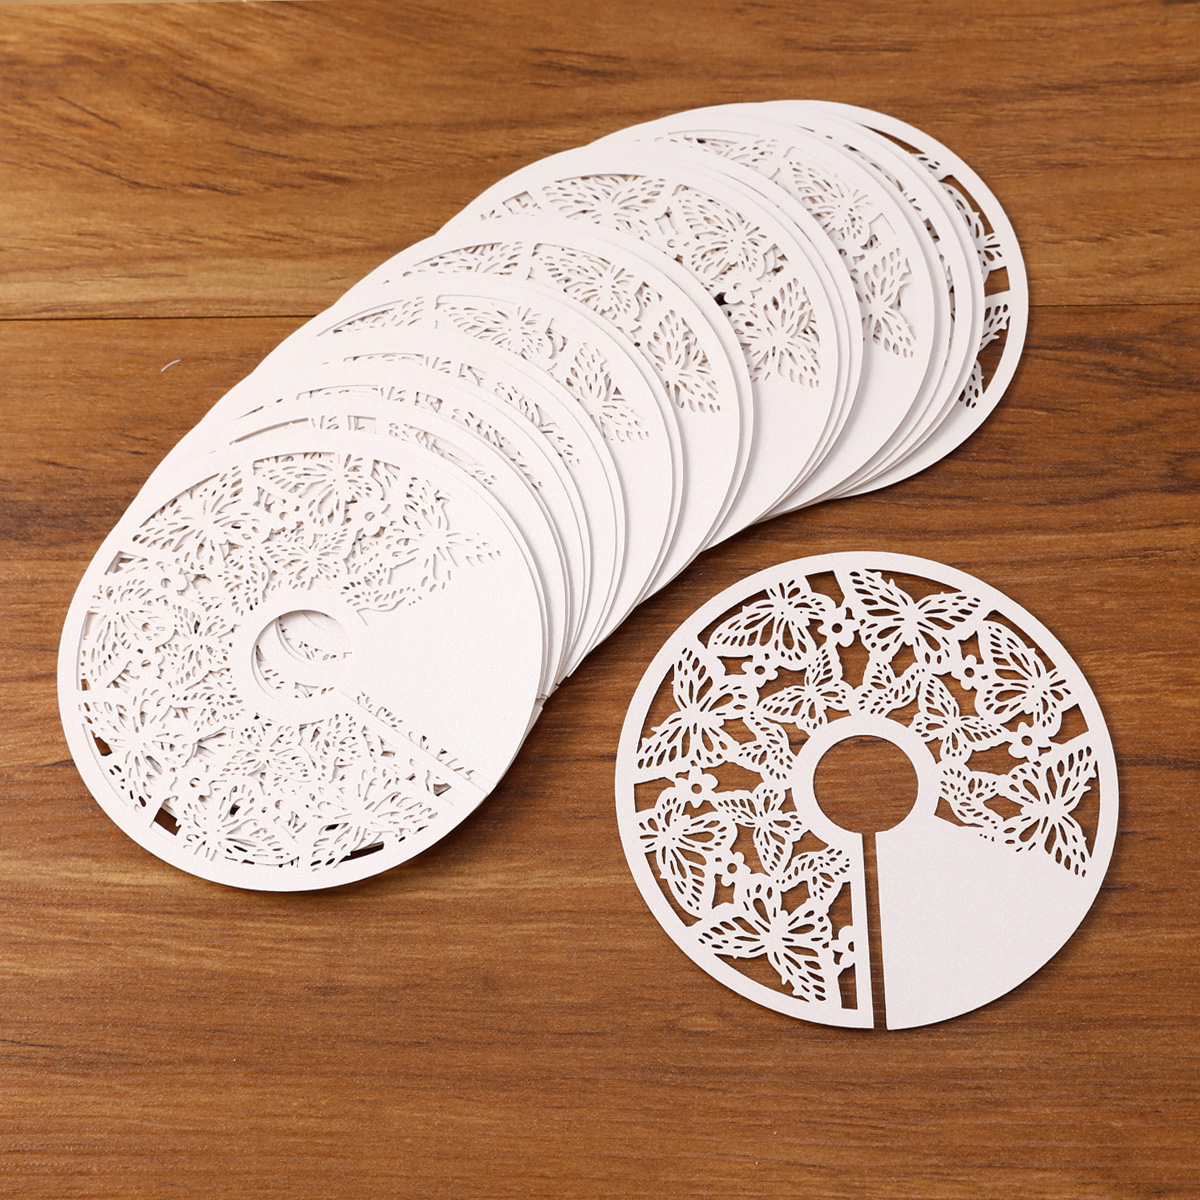 25 Coasters Table Mats Paper Cup Wine Glass Holder Name